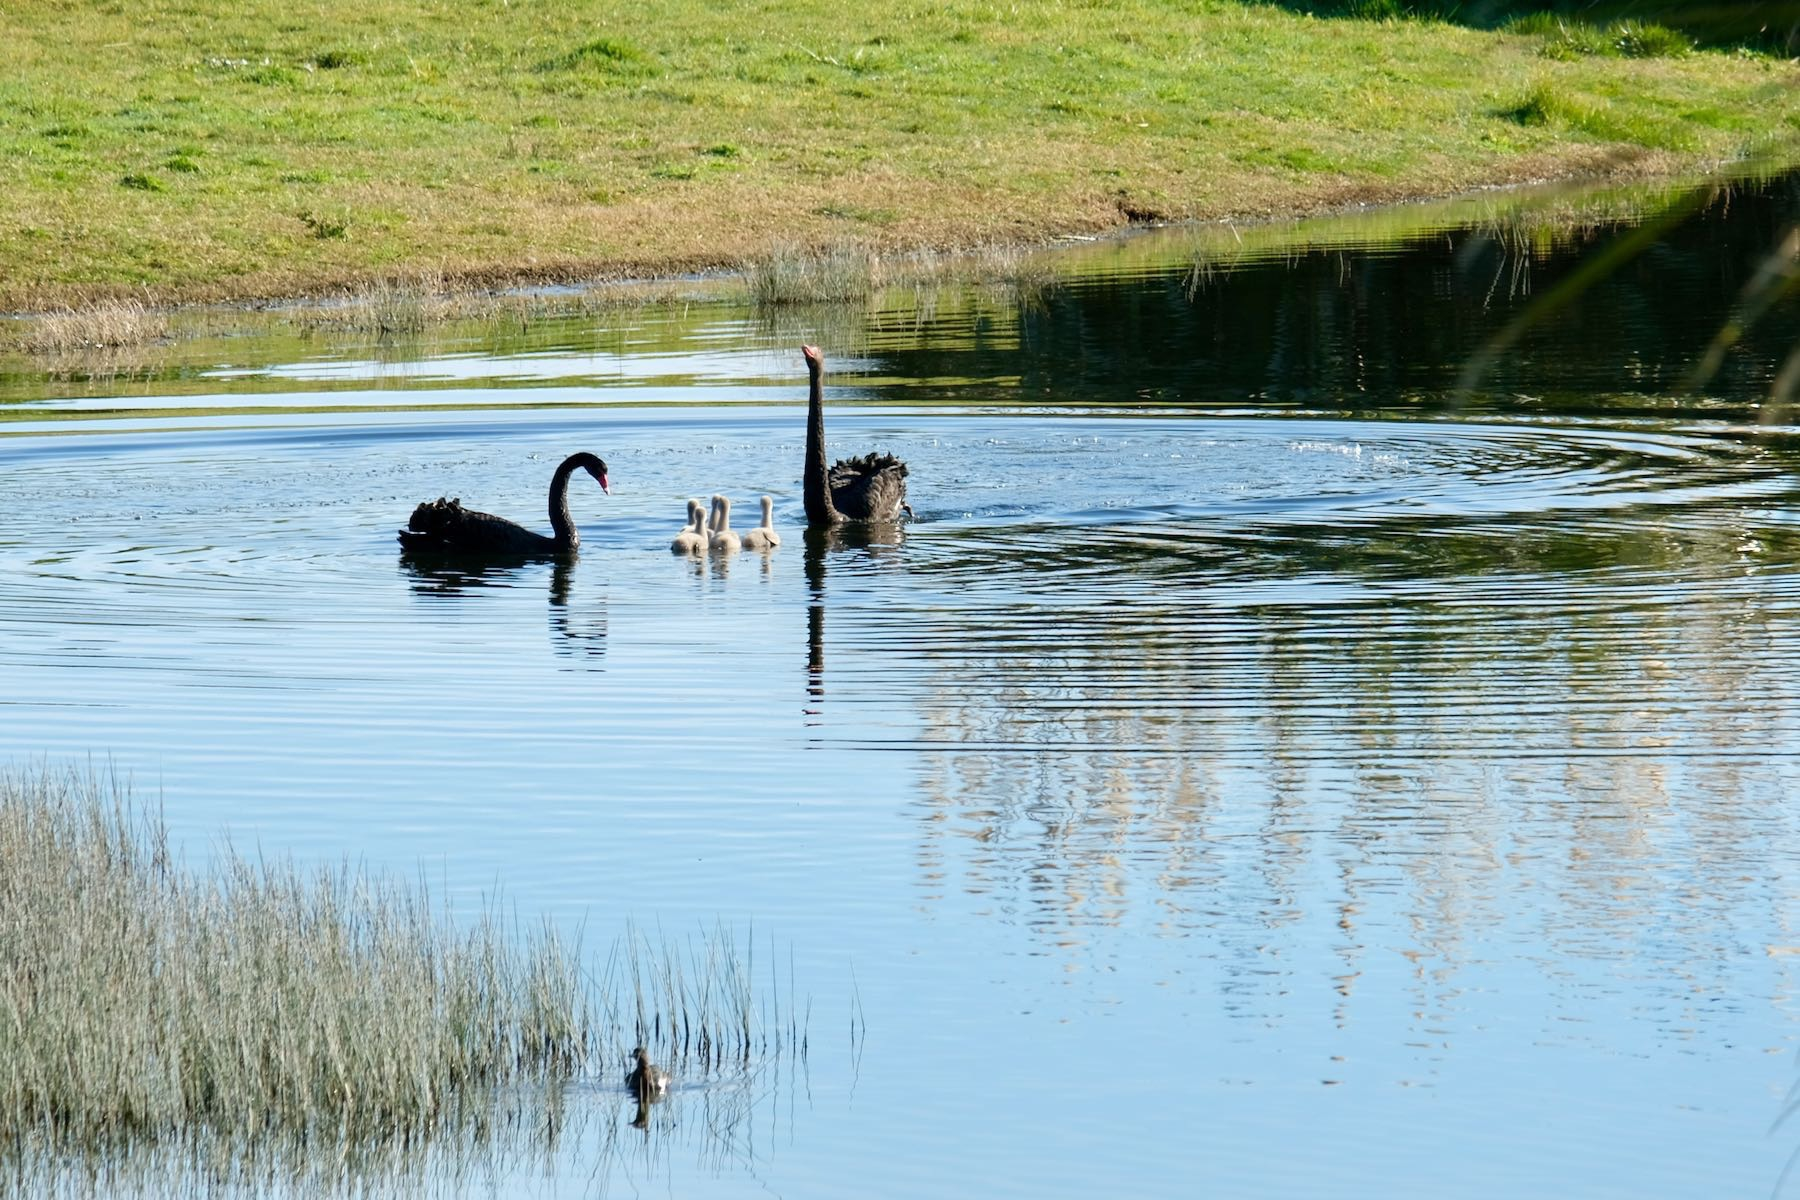 Two black swans on a lake with 5 white cygnets between them and another water bird in the foreground.